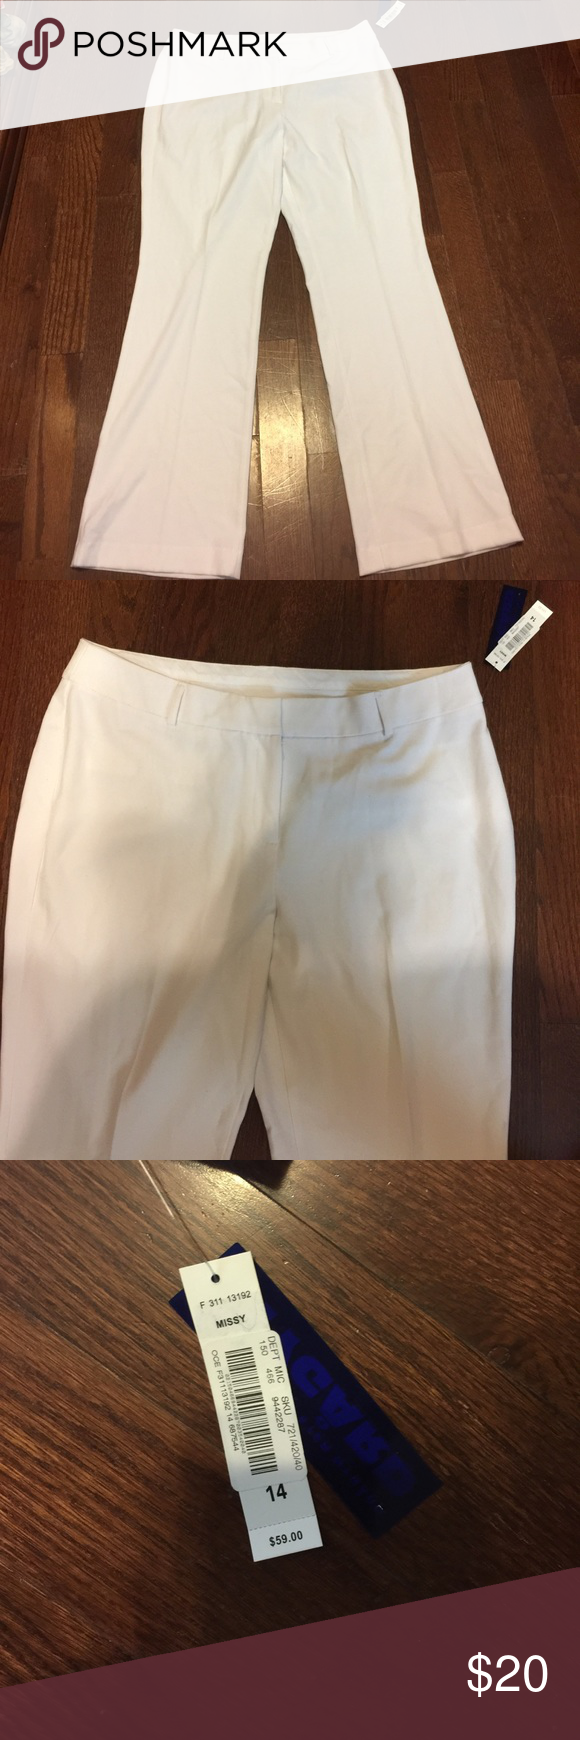 Peter Nygard white trousers Trousers peter Nygard Pants Trousers